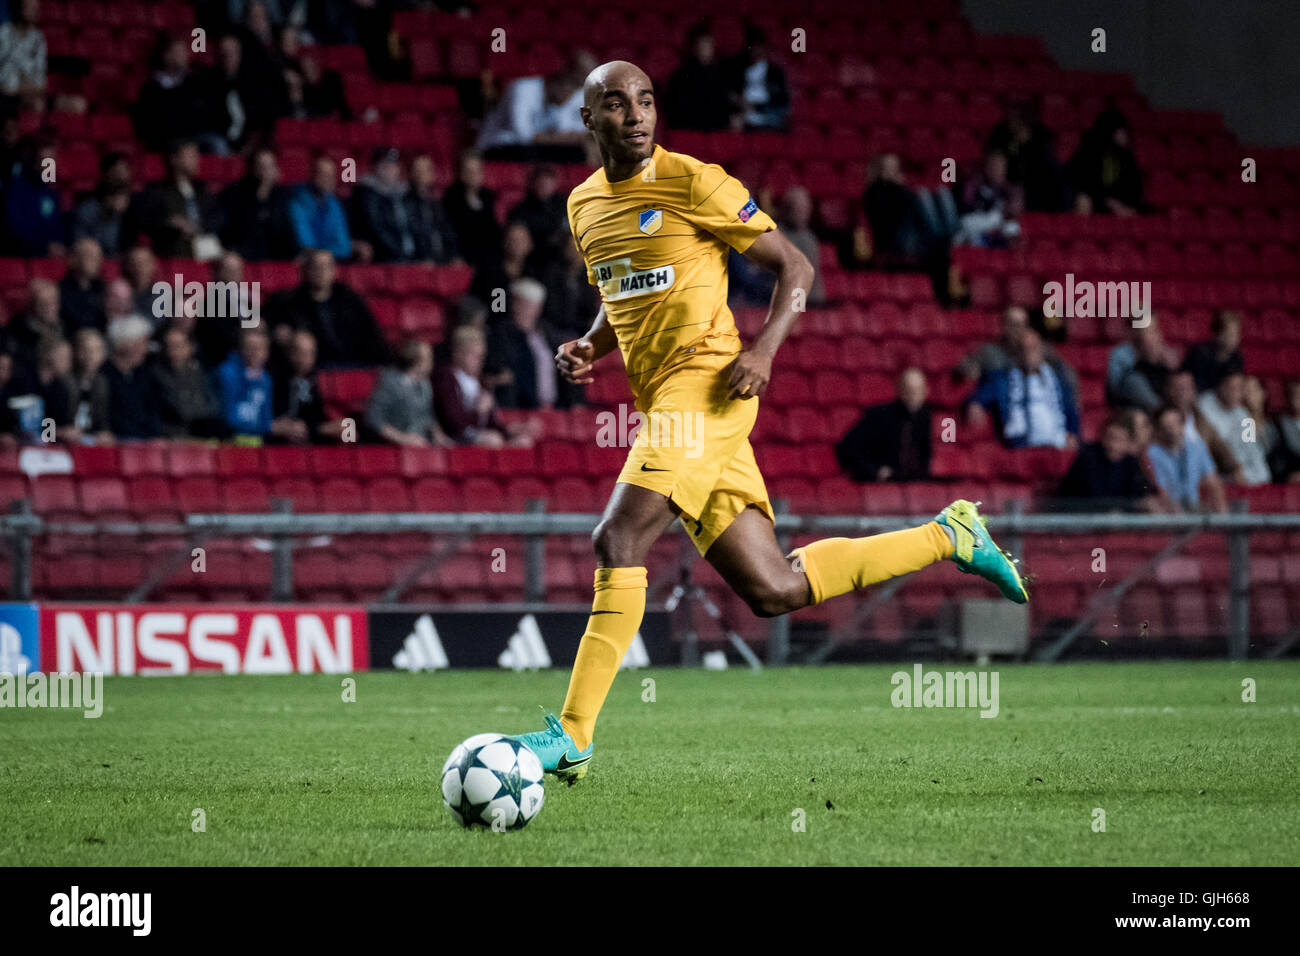 Denmark, Copenhagen, August 16th 2016. Carlao (5) of APOEL during the UEFA Champions League play-off match between Stock Photo